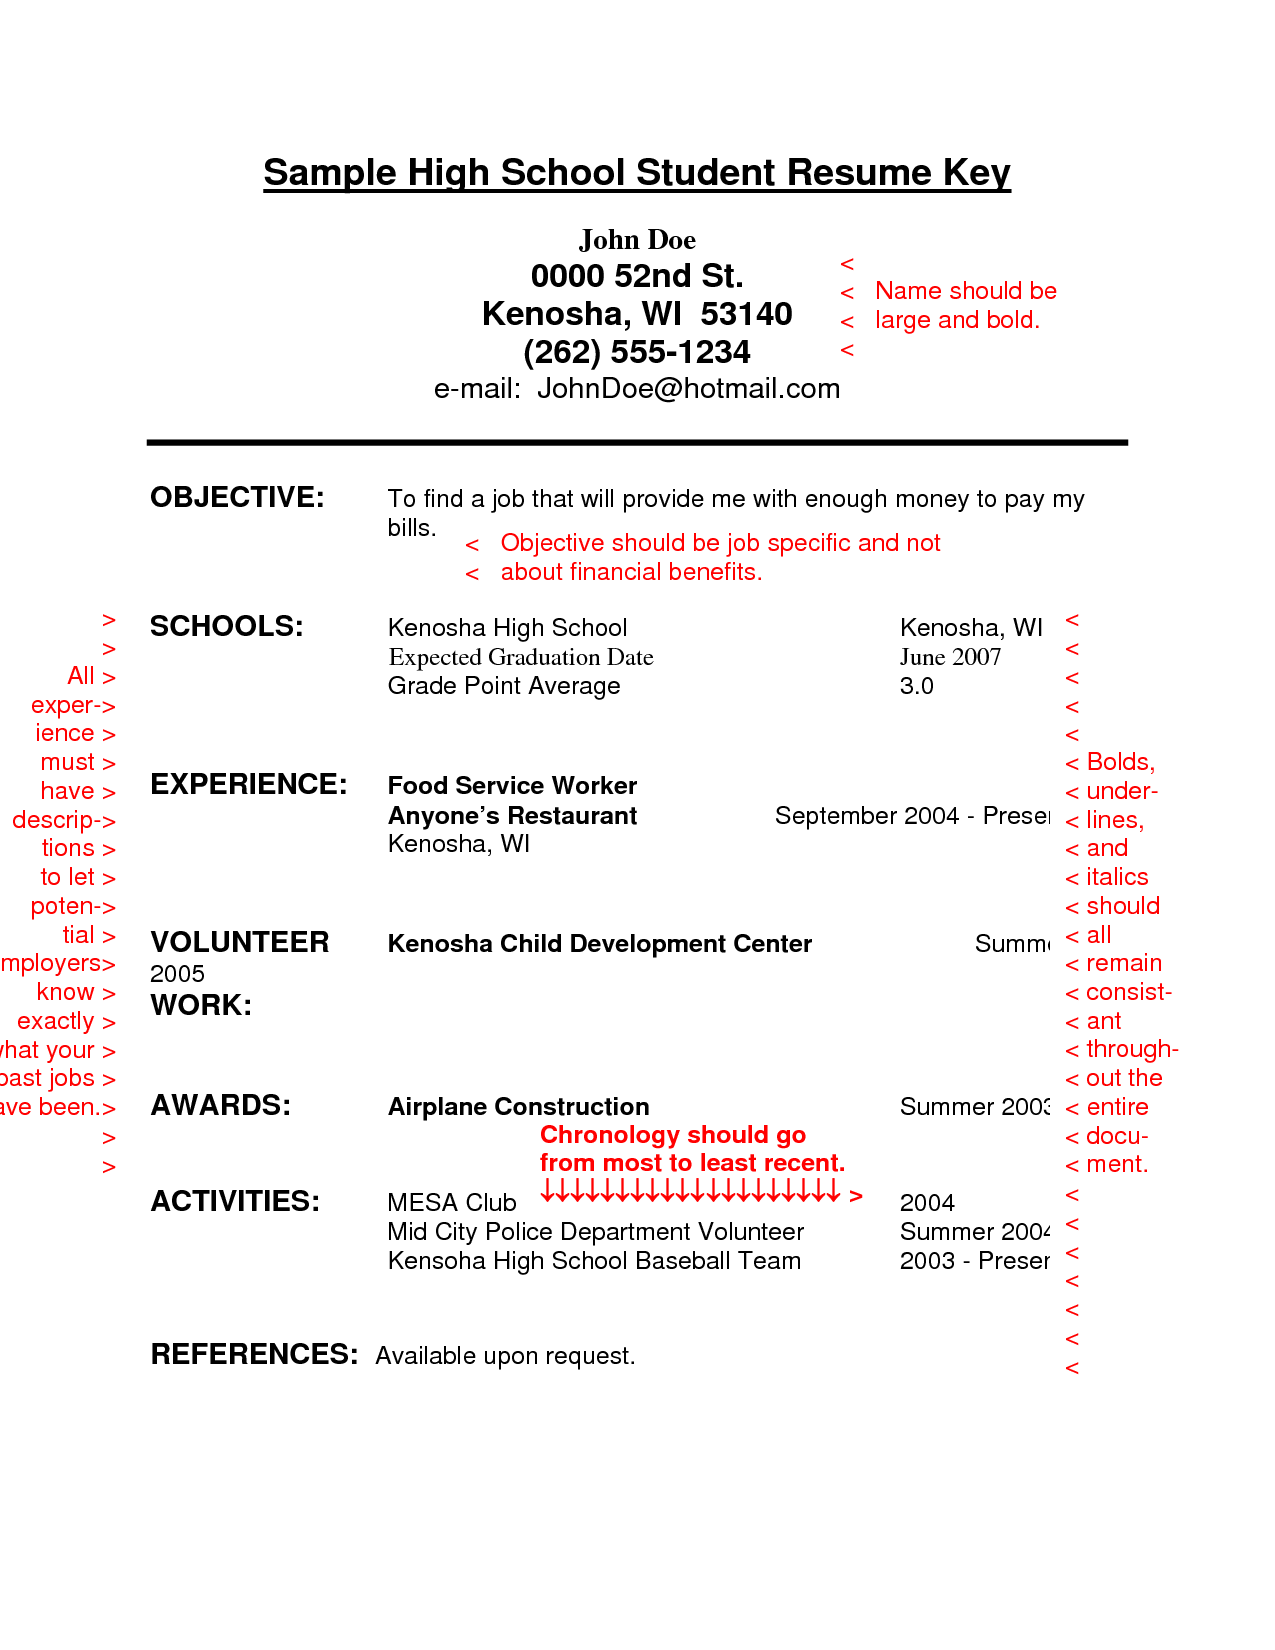 Resume Outline Examples Resume Sample For High School Students With No Experience  Http